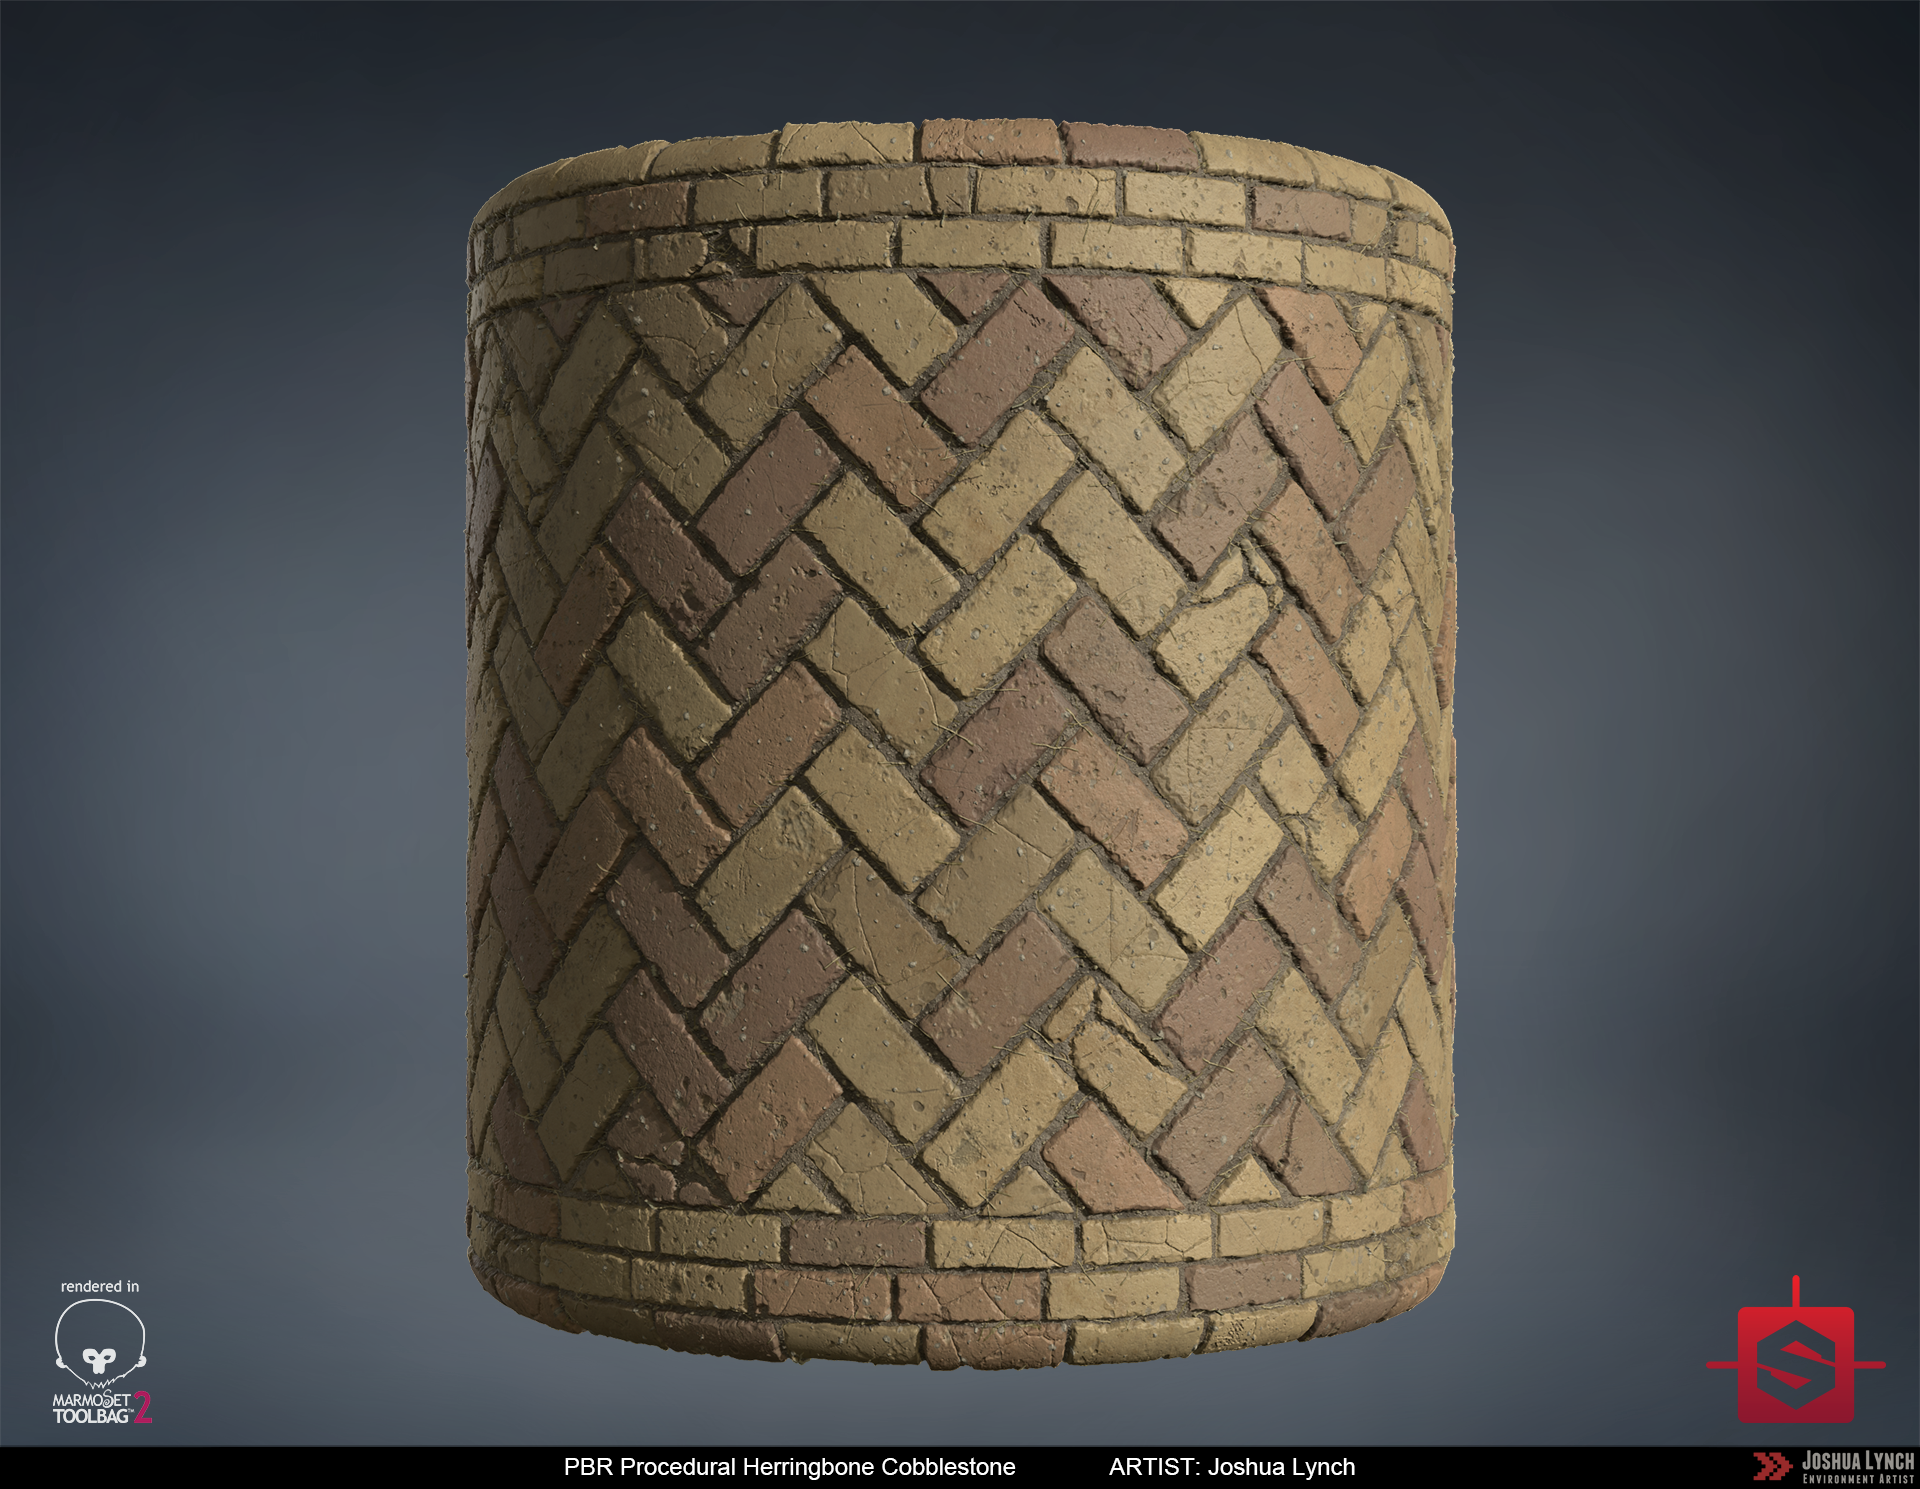 Floor_Cobblestone_Herringbone_Cylinder_Rev_03_Layout_Comp_Josh_Lynch.png